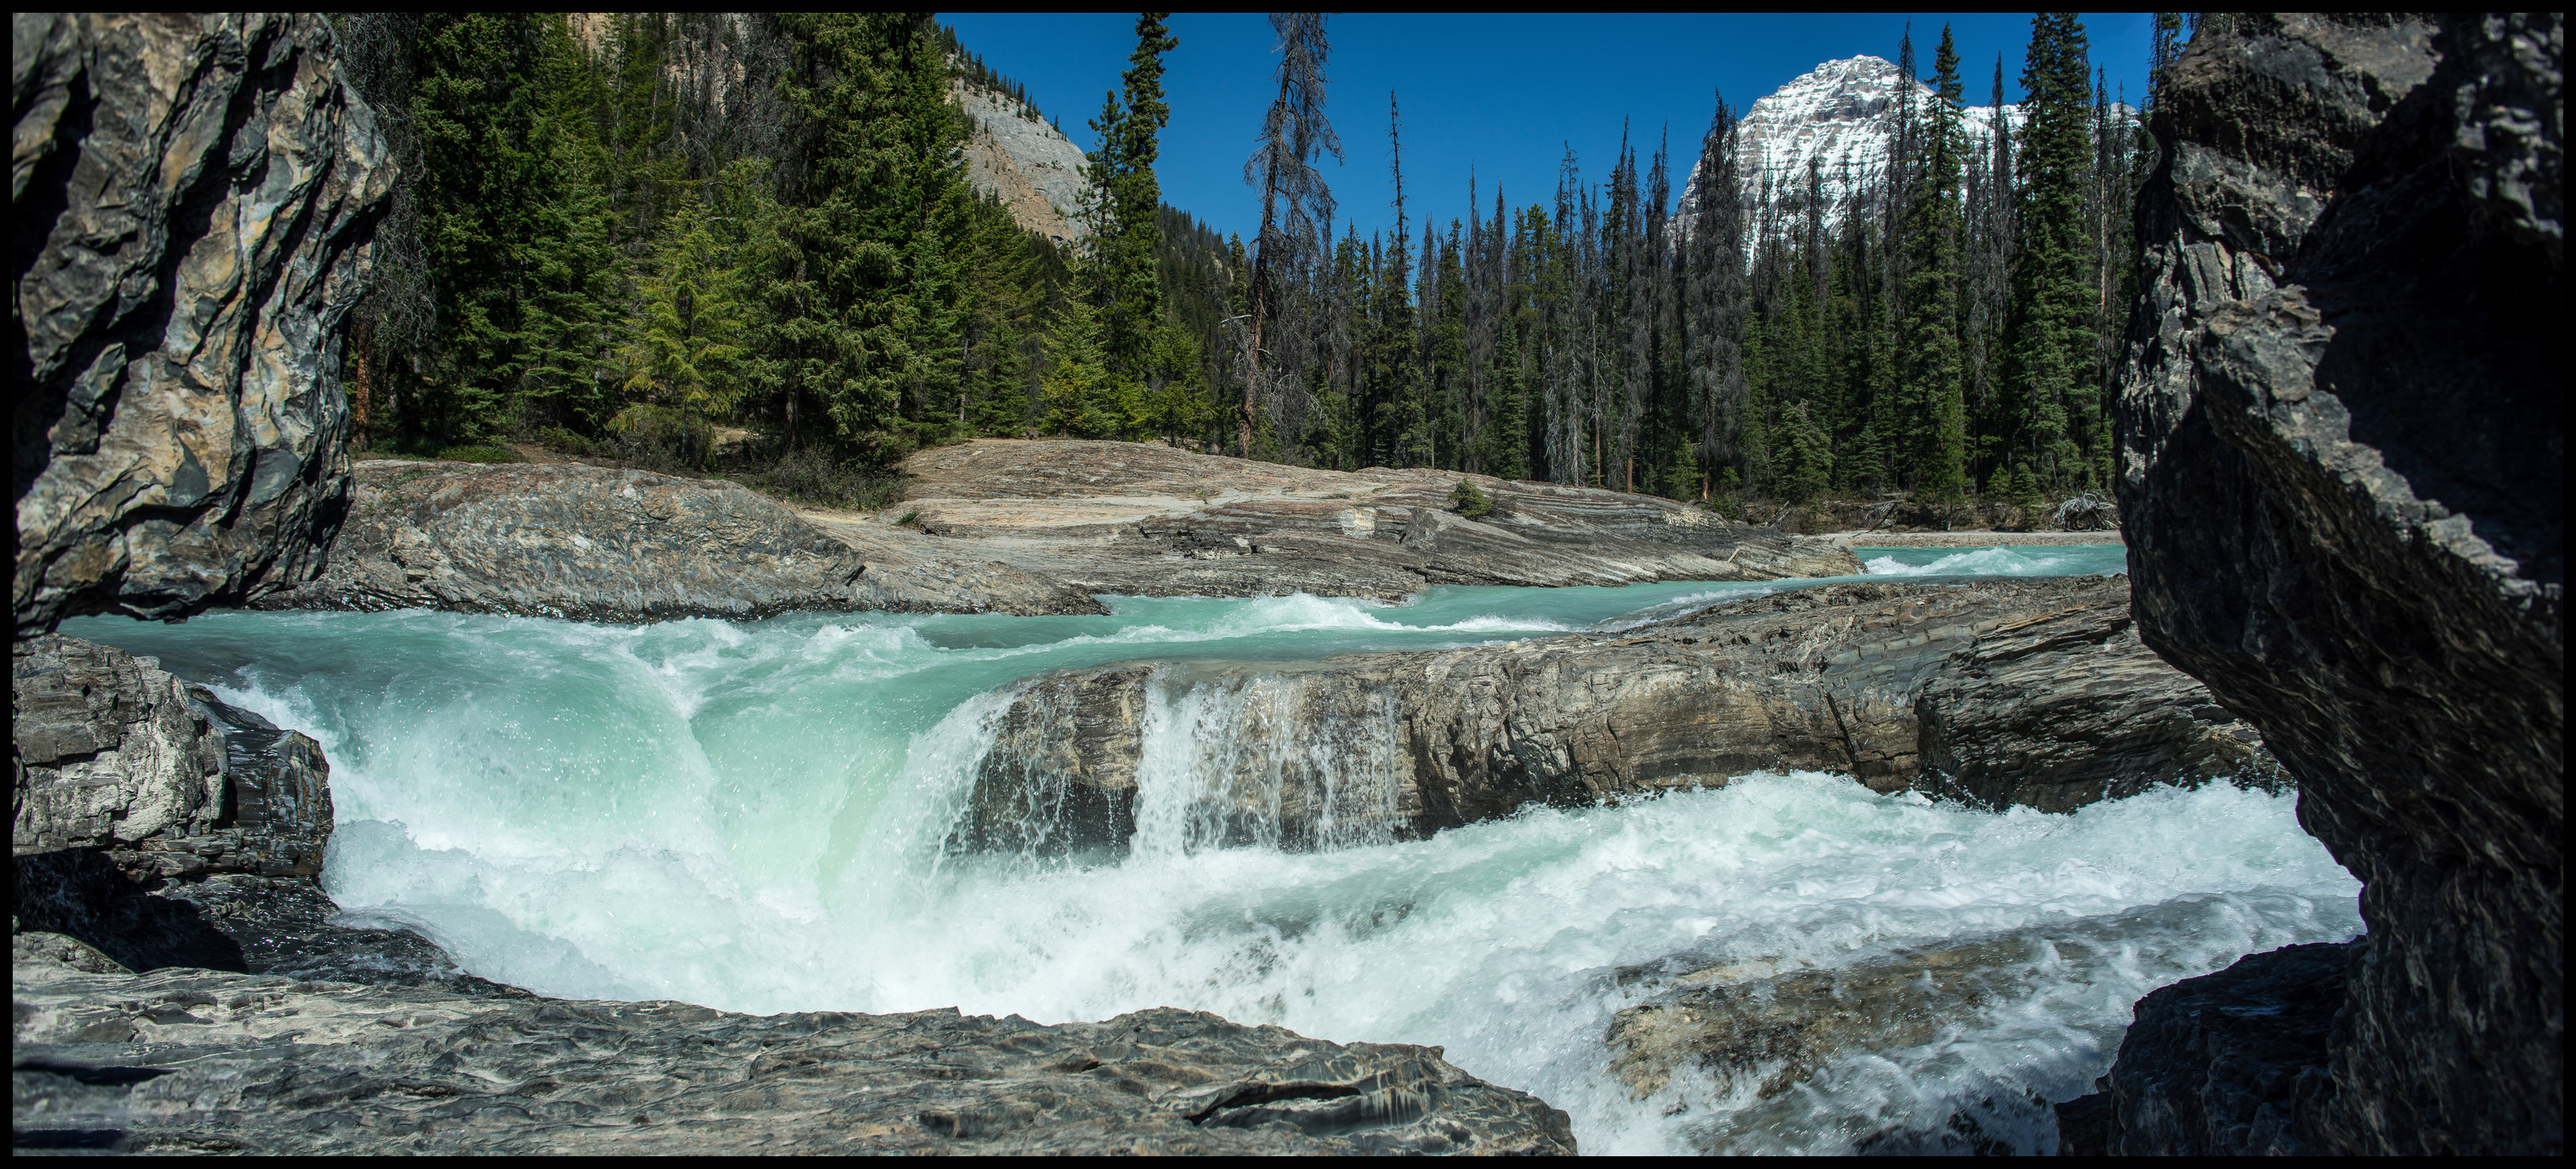 Natural bridge / Kicking horse river, Yoho National Park Sony A7 / Canon FD Tilt Shift 35 2.8